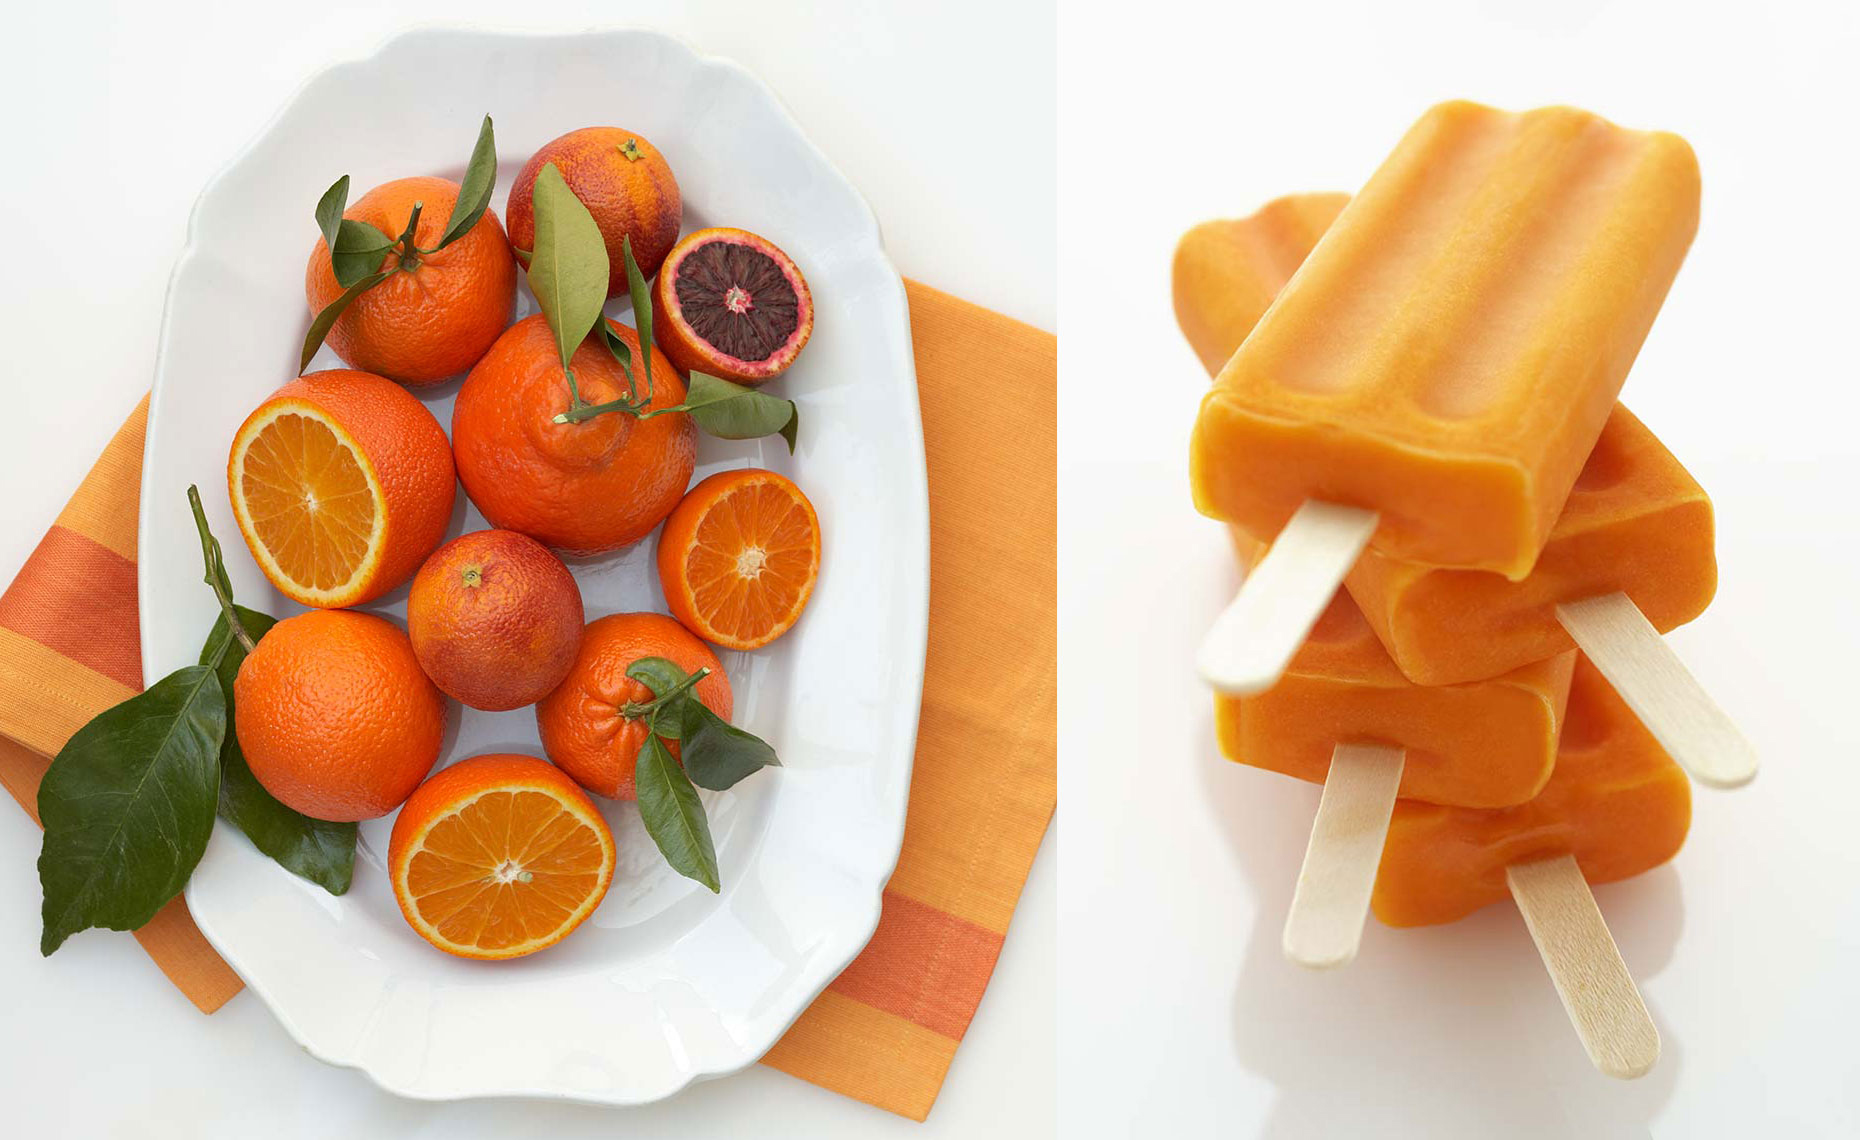 20-14_Nordeck_Oranges_Popsicles